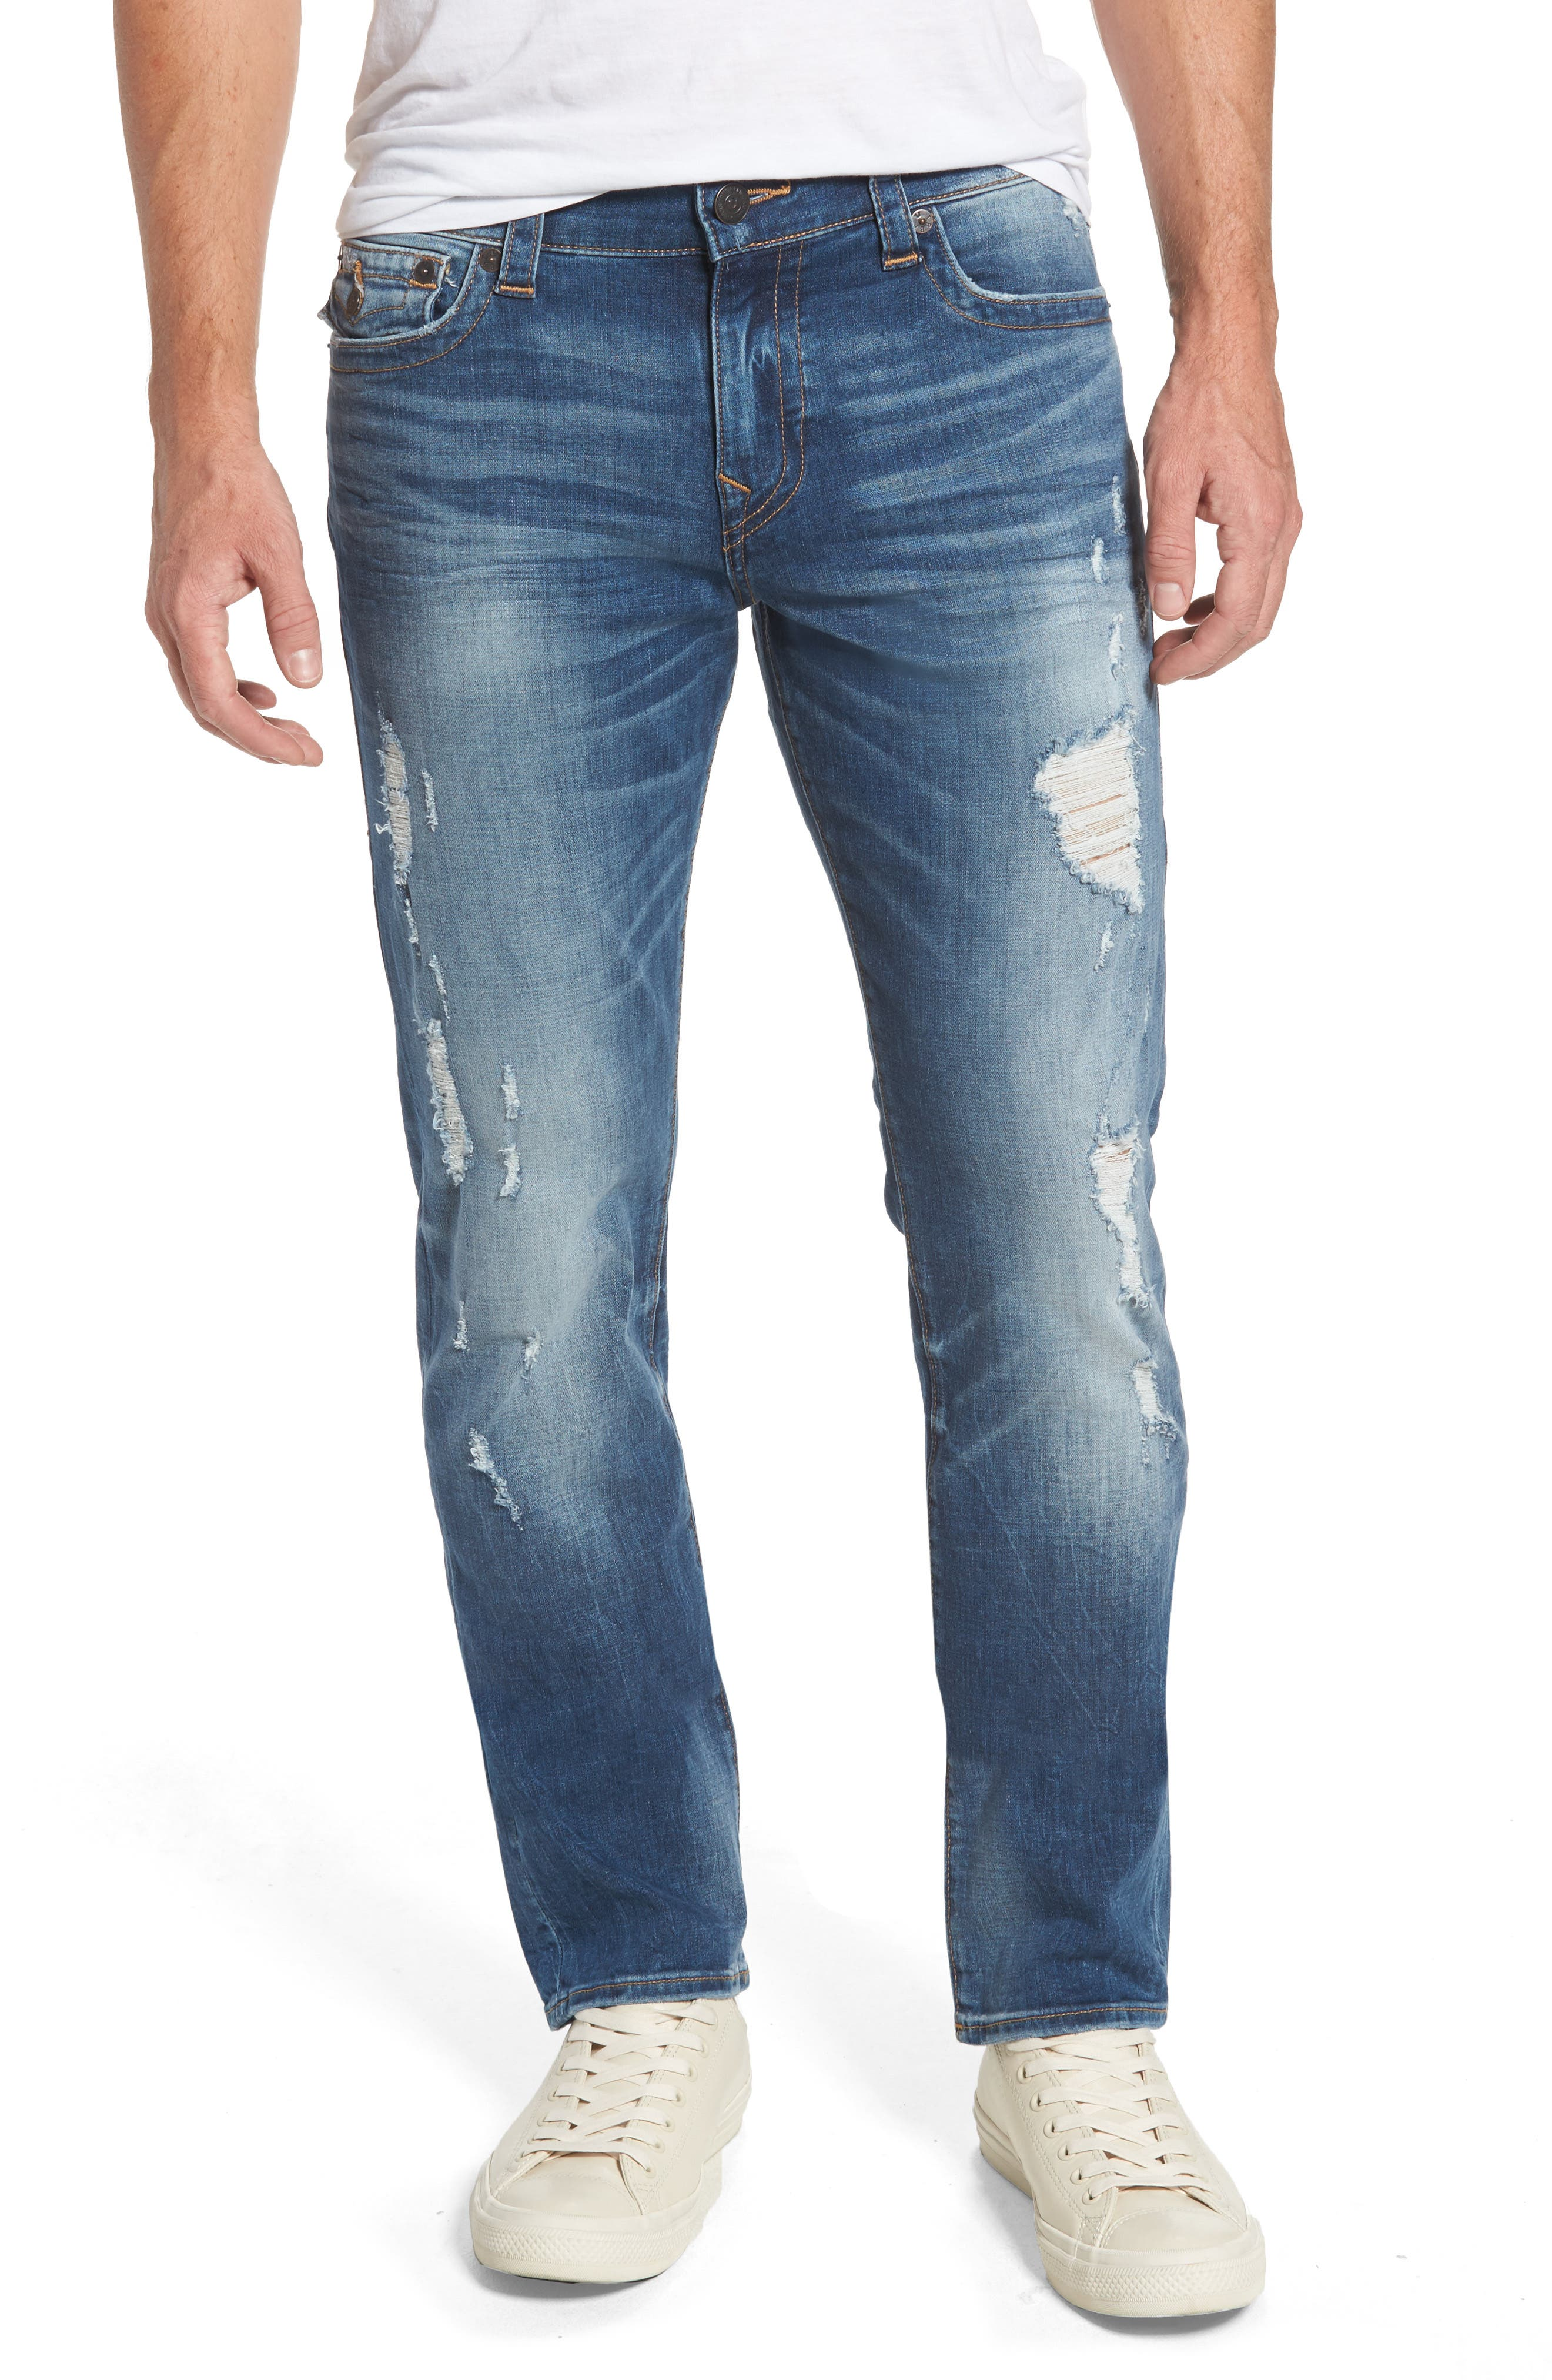 True Religion Brand Jeans Geno Straight Leg Jeans (Worn Rebellion)